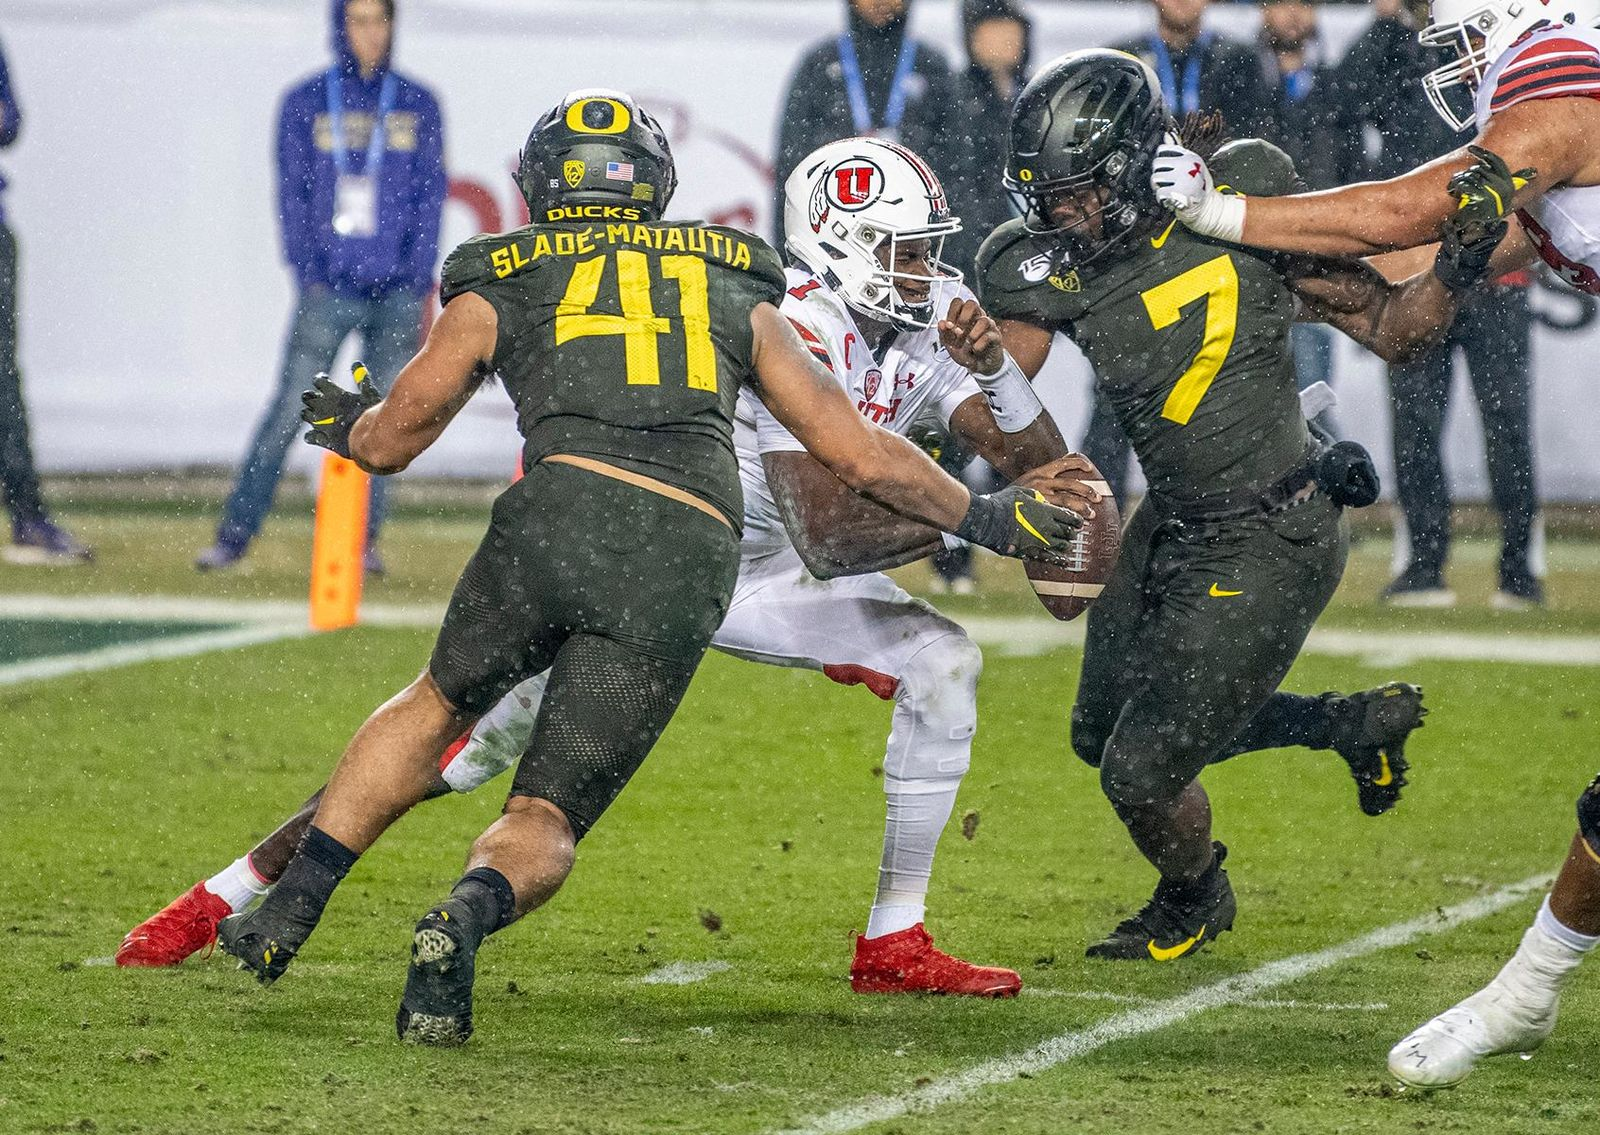 Oregon's middle linebacker Isaac Slade-Matautia, #41, and defensive end DJ Johnson, #7, sack Utah's quaterback Tyler Huntley, #1, for a loss of yards.  The University of Oregon Ducks defeated the University of Utah Utes 37-15 for the Pac 12 Championship Friday night at Levi's Stadium. Oregon's running back CJ Verdell, #7, rushed for 203 all-purpose yard along with three touchdowns for the night. Verdell was named the games M-V-P for his performace. Oregon's safey Brady Breeze, #25, contributed 9 tackles and one interception. Oregon's defensive end Kayvon Thibodeaux, #5, sacked Utah's quarterback Tyler Huntly, #1, for a total of three times. Oregon's quarterback Justin Herbert, #10, passed for 193 yards with one touchdown. The Oregon Ducks will represent the Pac 12 for the upcoming Rose Bowl game in the new year. Photo by Jeffrey Price